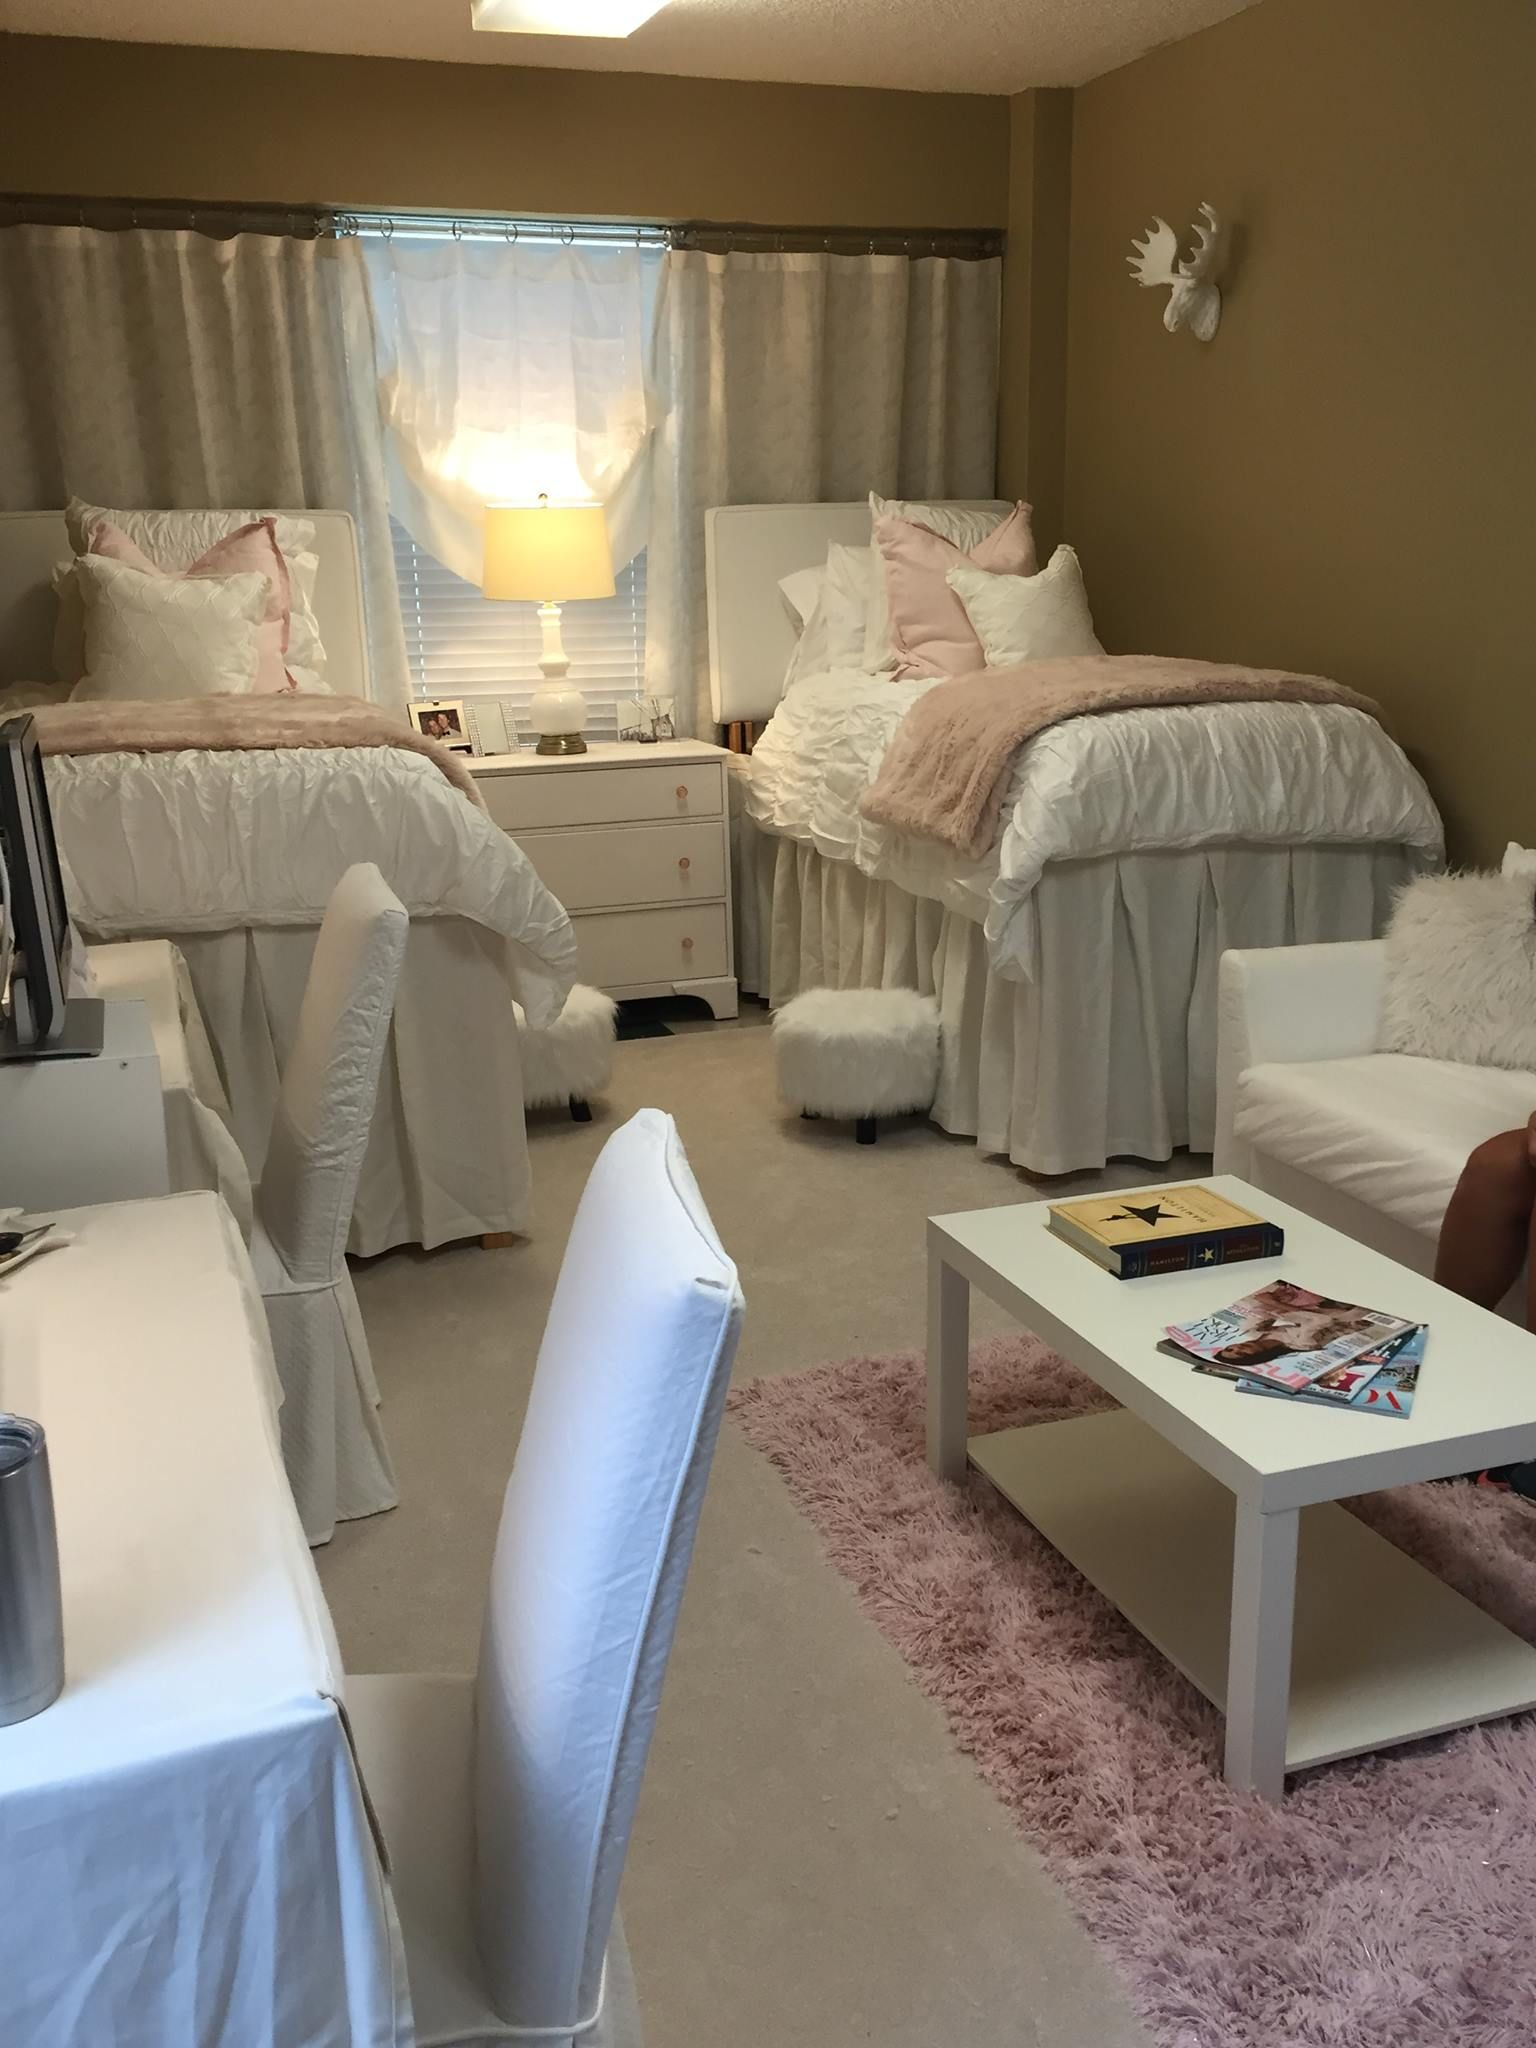 Image Result For Ole Miss Dorm Rooms Ole Miss Dorm Rooms Girls Dorm Room Dorm Room Styles